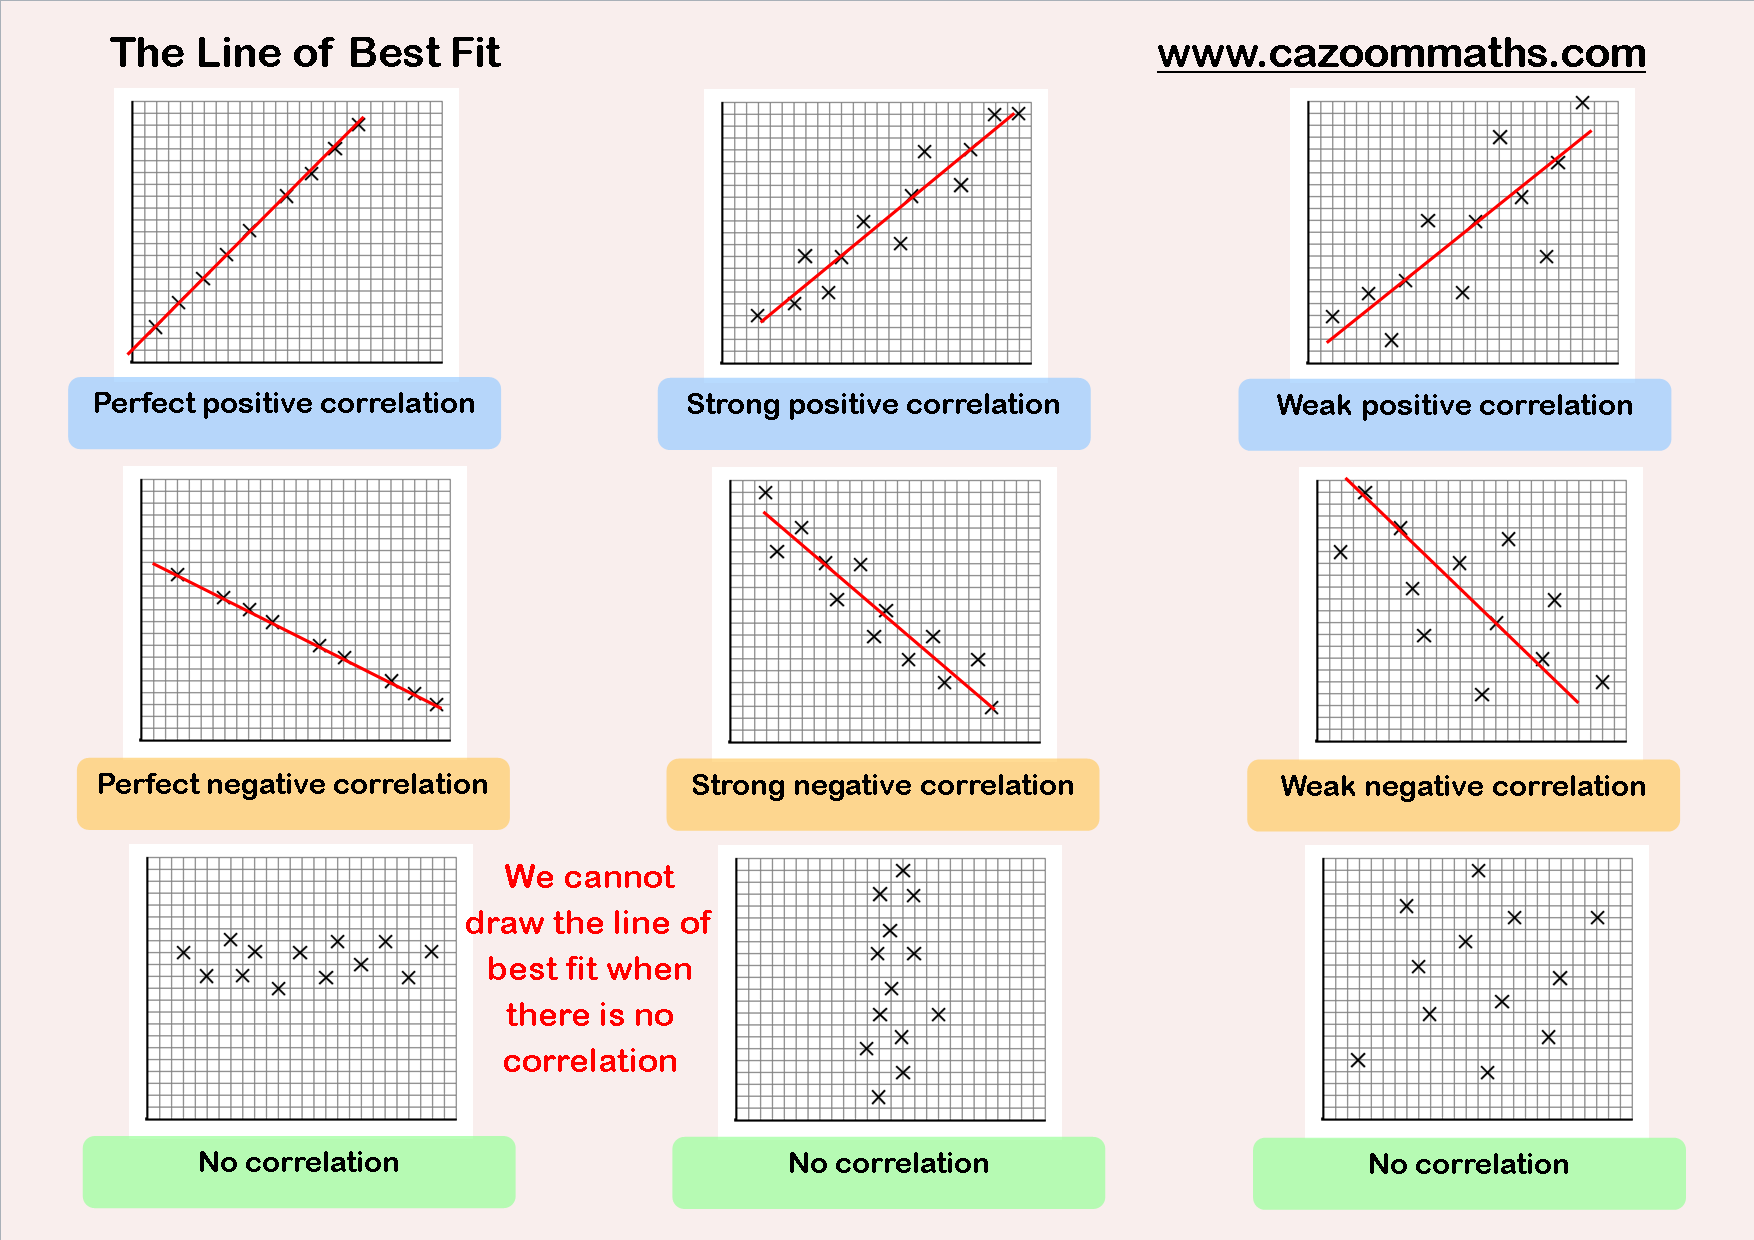 ter Plots and Lines Of Best Fit Worksheet Answer Key Elegant besides ter Plot Line Math Dash Math ter Plot Line Of Best Fit in addition ter Plots and Lines Of Best Fit Worksheet Fresh ter Plot moreover ter Plots and Lines Of Best Fit Worksheet Unique Line Best Fit together with 12 Best ter Plot images   ter plot  Data visualisation  Charts besides ter Graphs Worksheet   KS3  GCSE by cameronwilford   Teaching moreover Drawing Line Of Best Fit Worksheet   thefriendzone us furthermore ter Graphs   Teaching Stuff   Math worksheets  Gre math  Line as well Line Of Best Fit Worksheet   Ivoiregion besides 43 Drawing Line Of Best Fit Worksheet Yb4k3   Wikiprestashop likewise ter Plots and Lines Of Best Fit Worksheet Inspirational Line in addition  in addition Quiz   Worksheet   Line of Best Fit   Study also Best fit line   Practice problems besides √ All Worksheets ter Plots Worksheets besides ter Plot Worksheet Math Drawing Line Of Best Fit Worksheet. on line of best fit worksheet